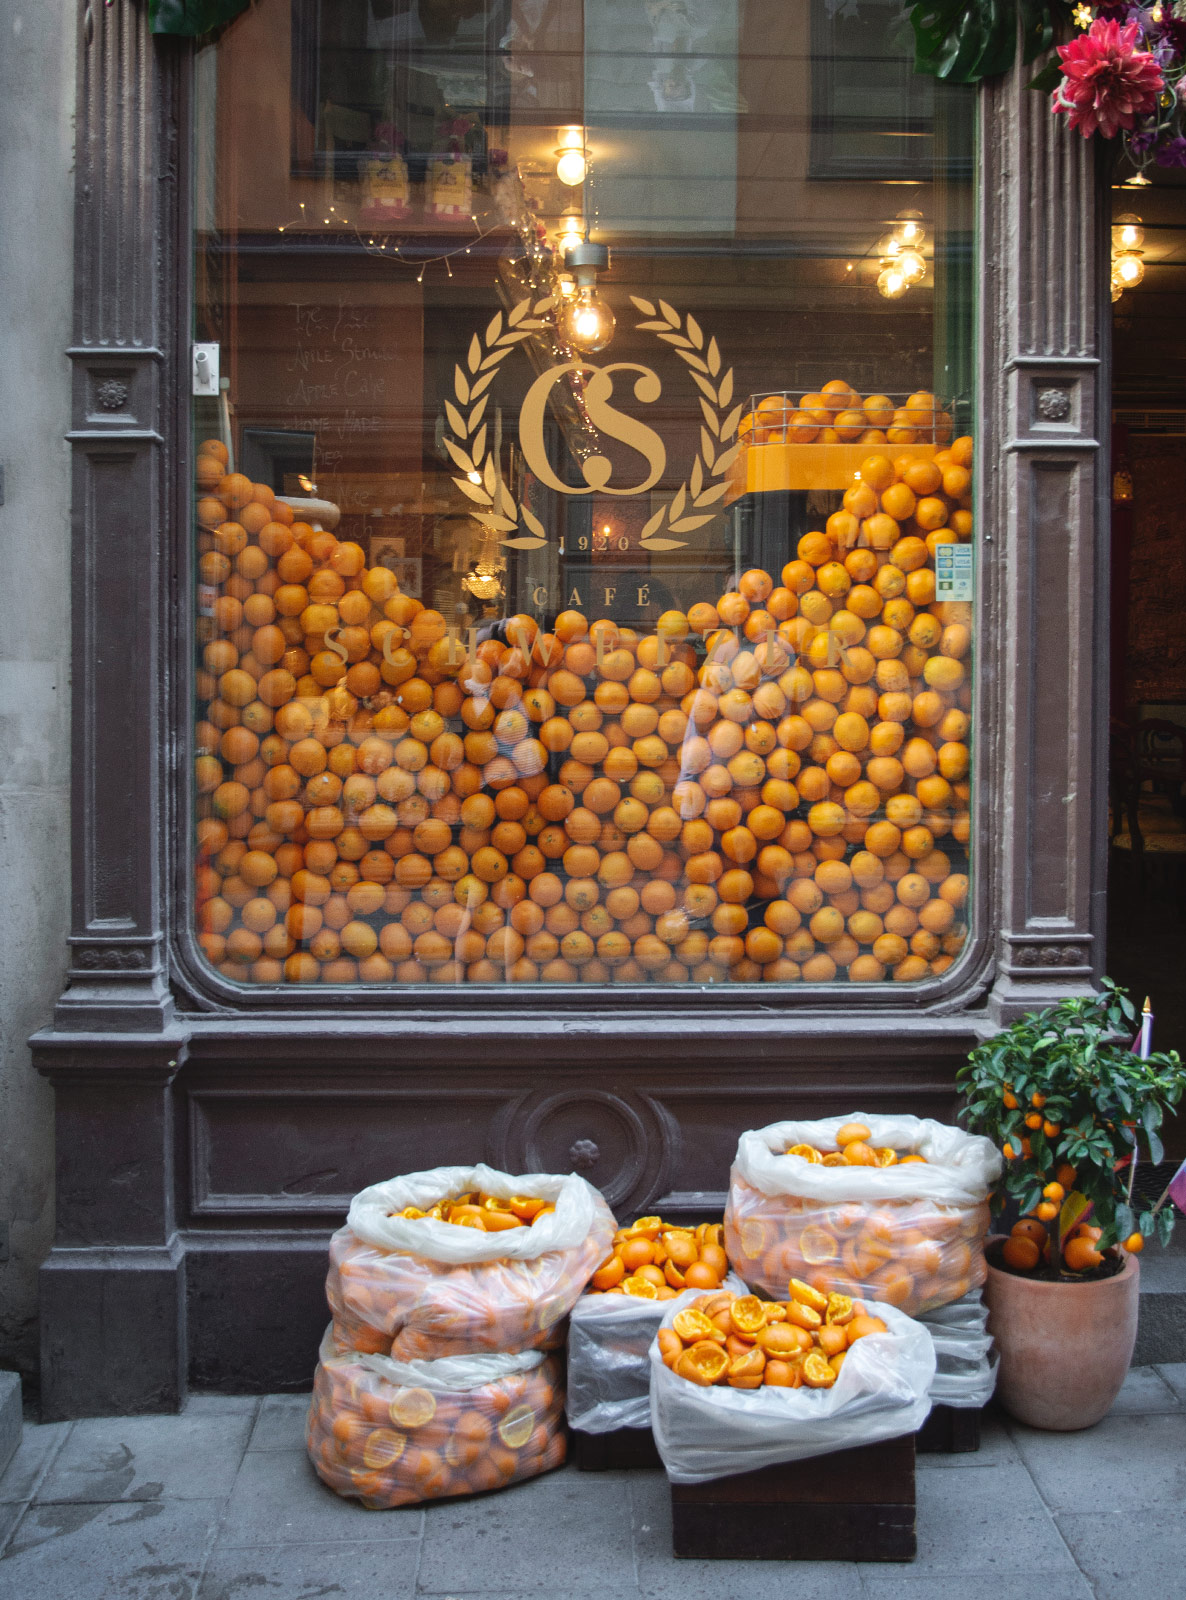 Oranges in cafe window